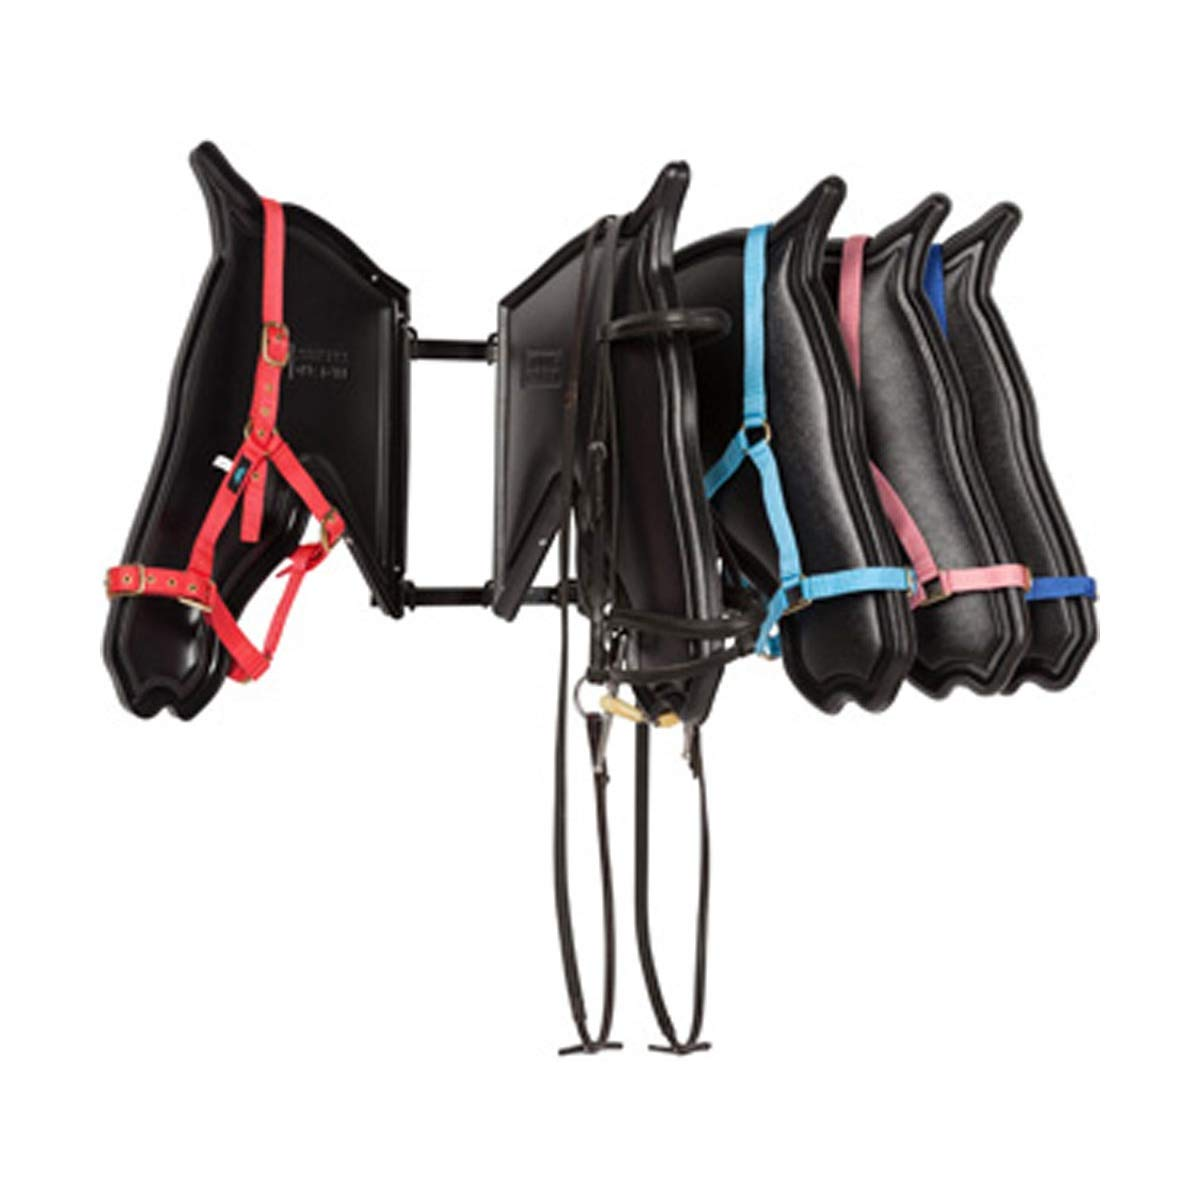 Stubbs Multi Heads Bridle Stand (One Size) (Black) by Stubbs